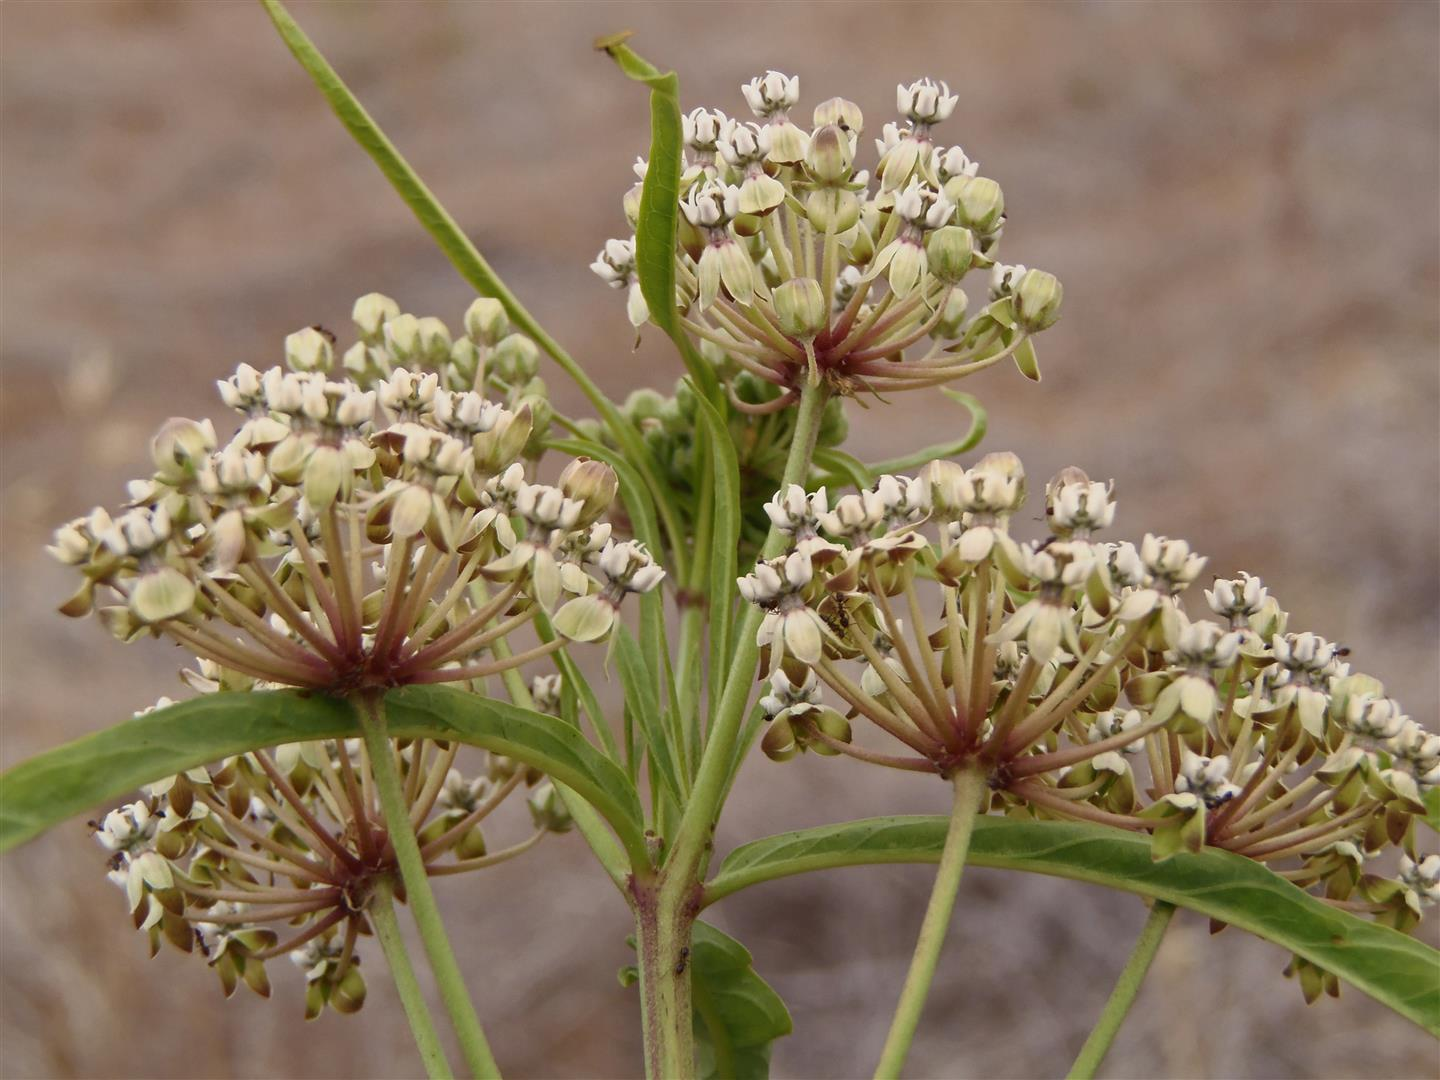 Narrow-leaf Milkweed (Asclepias fascicularis) is a native species that grows on our local hillsides and is an excellent foodplant for Monarch butterflies.